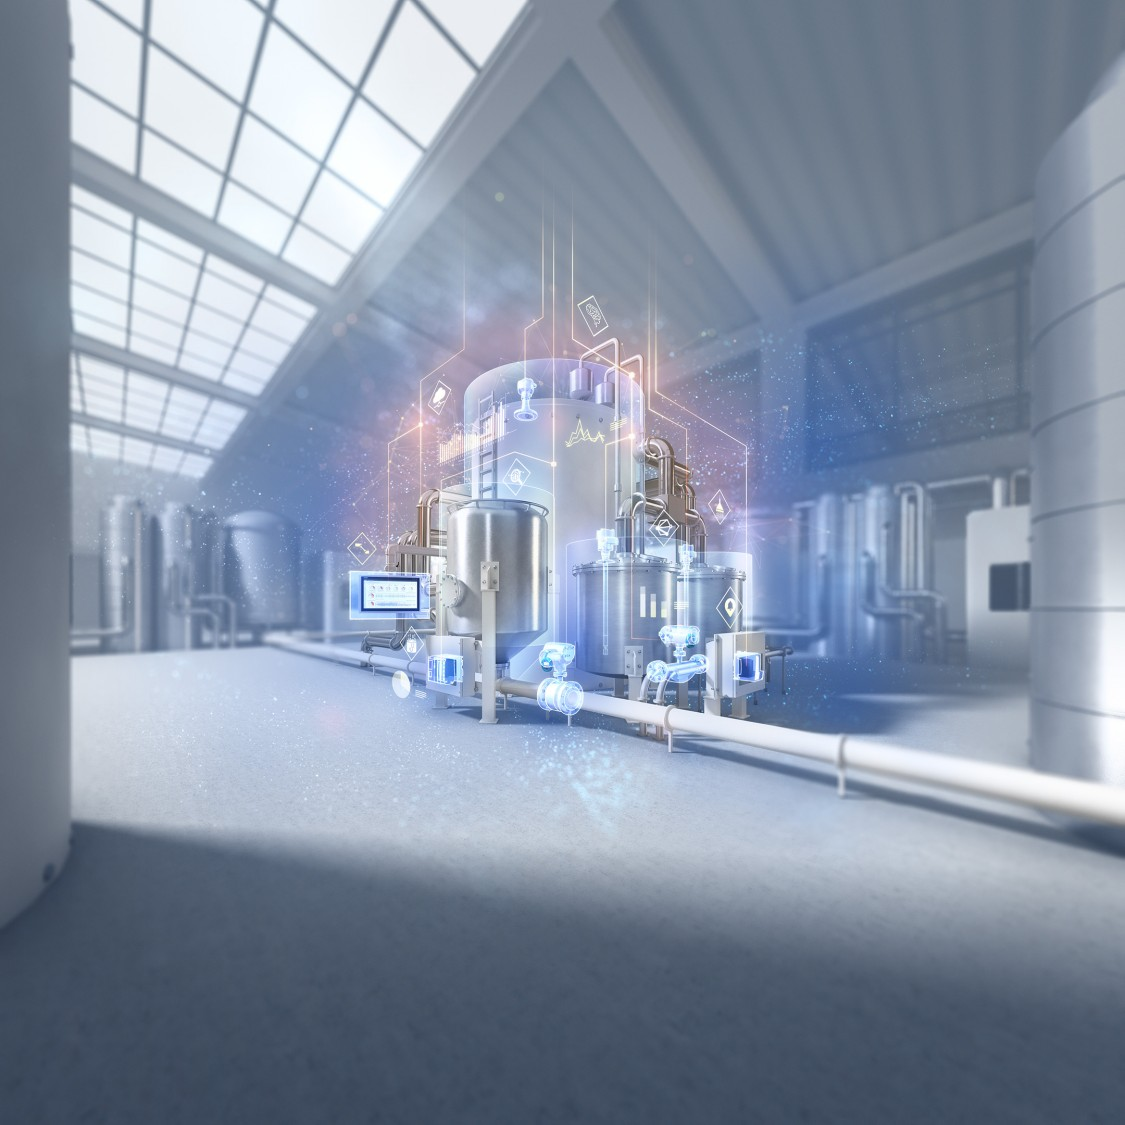 Industrial Edge for process industry plants and fleets paving the way to autonomous asset management and process optimization